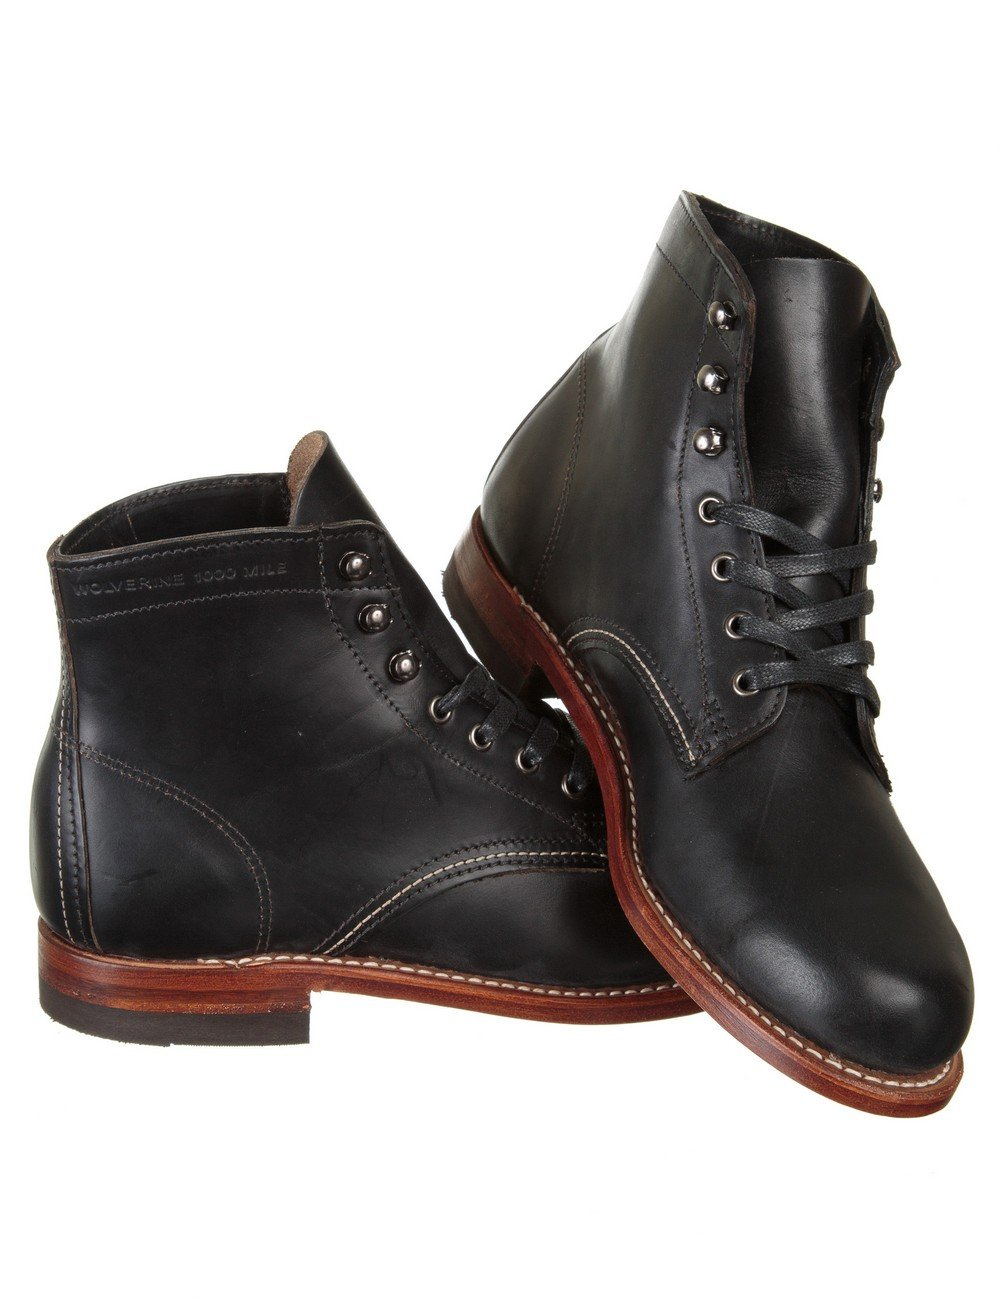 wolverine 1000 mile boot black casual shoes from